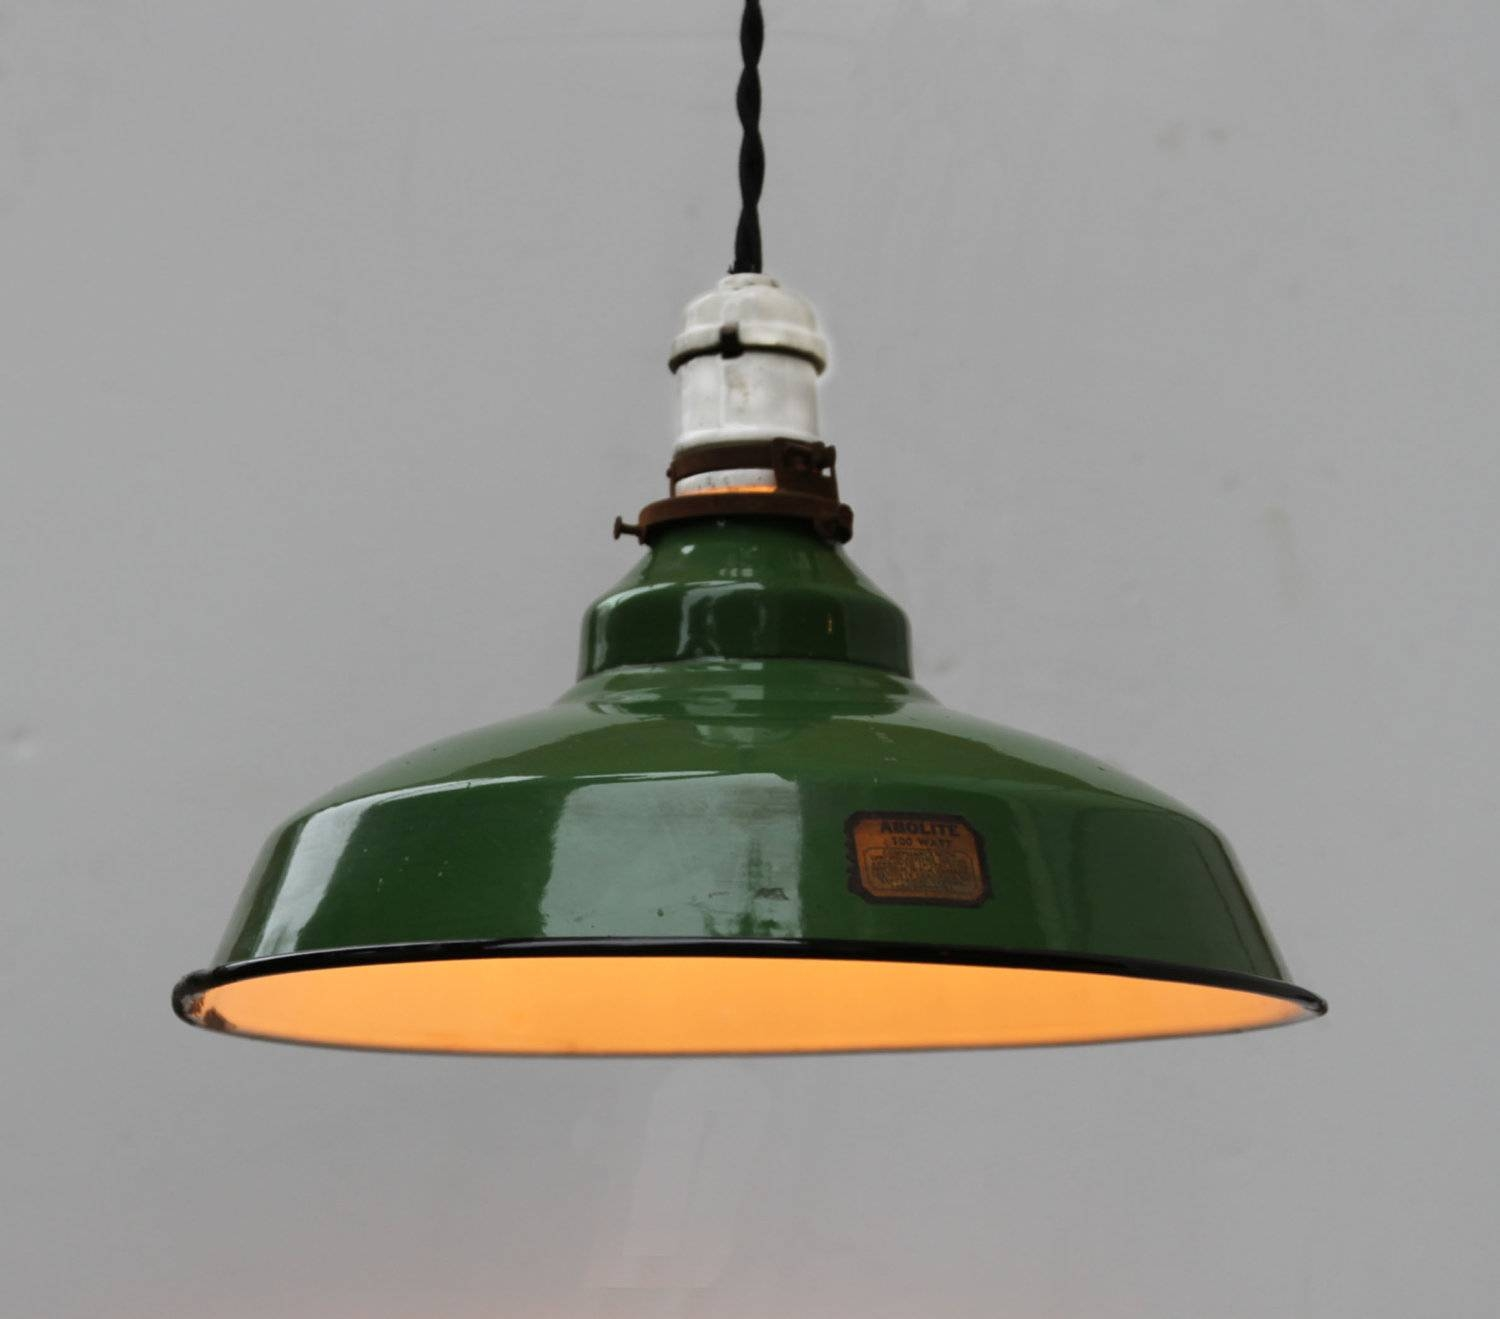 Retro Light Fixtures | Home Lighting Insight in Industrial Style Pendant Lights Fixtures (Image 12 of 15)